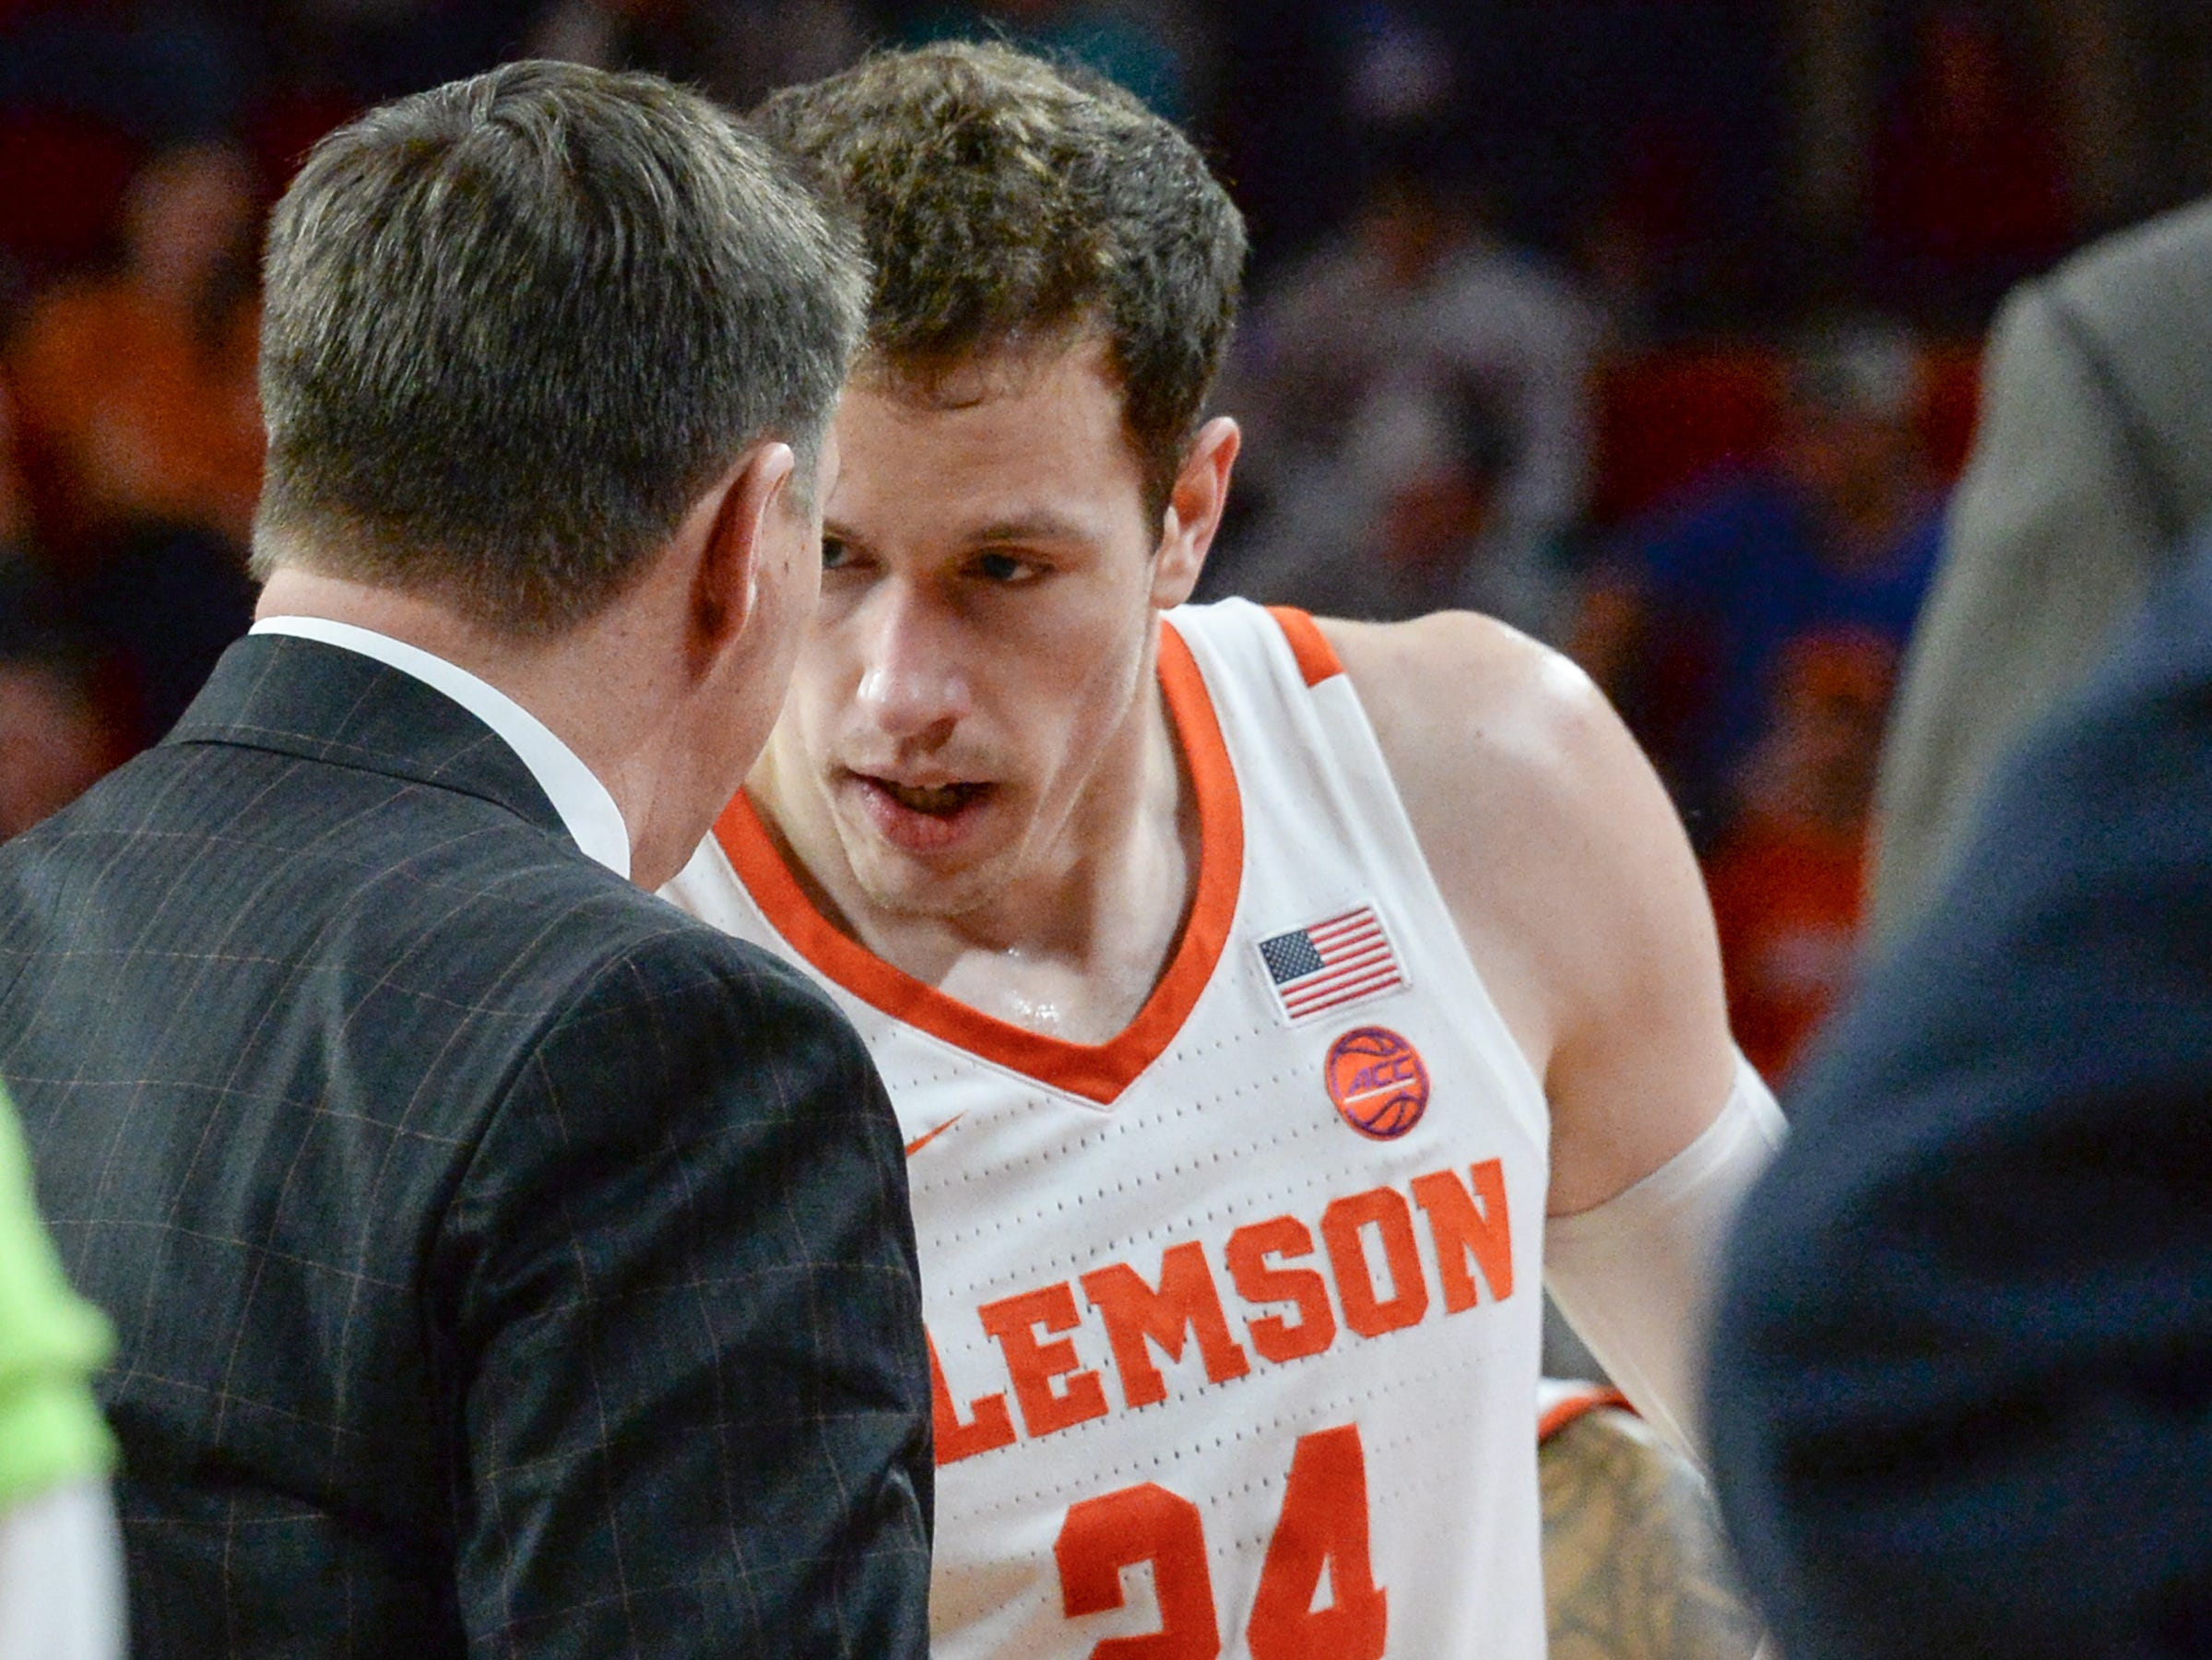 Clemson head coach Brad Brownell talks with Clemson forward David Skara (24) in a timeout from playing Florida State during the second half at Littlejohn Coliseum in Clemson Tuesday, February 19, 2019.